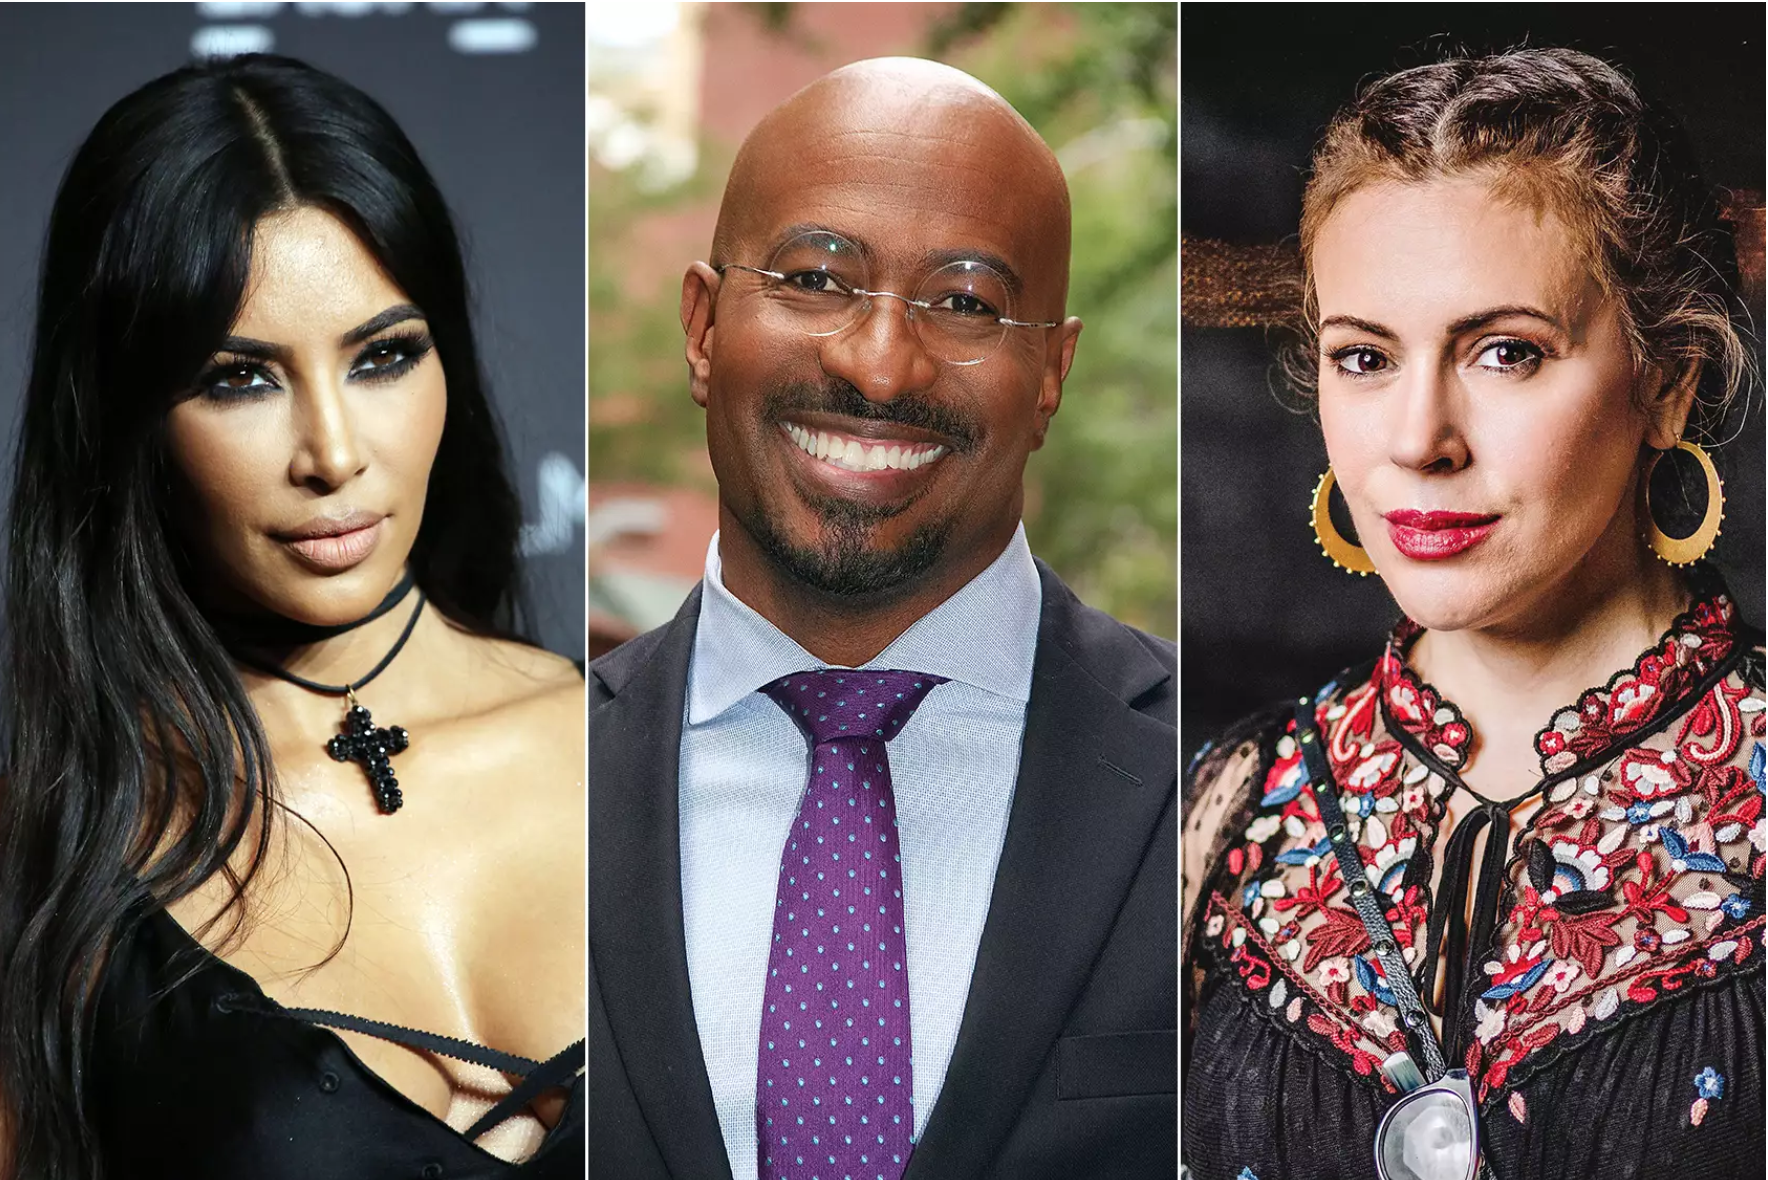 Rolling Stone Exclusive: Kim Kardashian, Alyssa Milano, Van Jones Among 50+ Celebrities Lobbying for Prison Reform Legislation